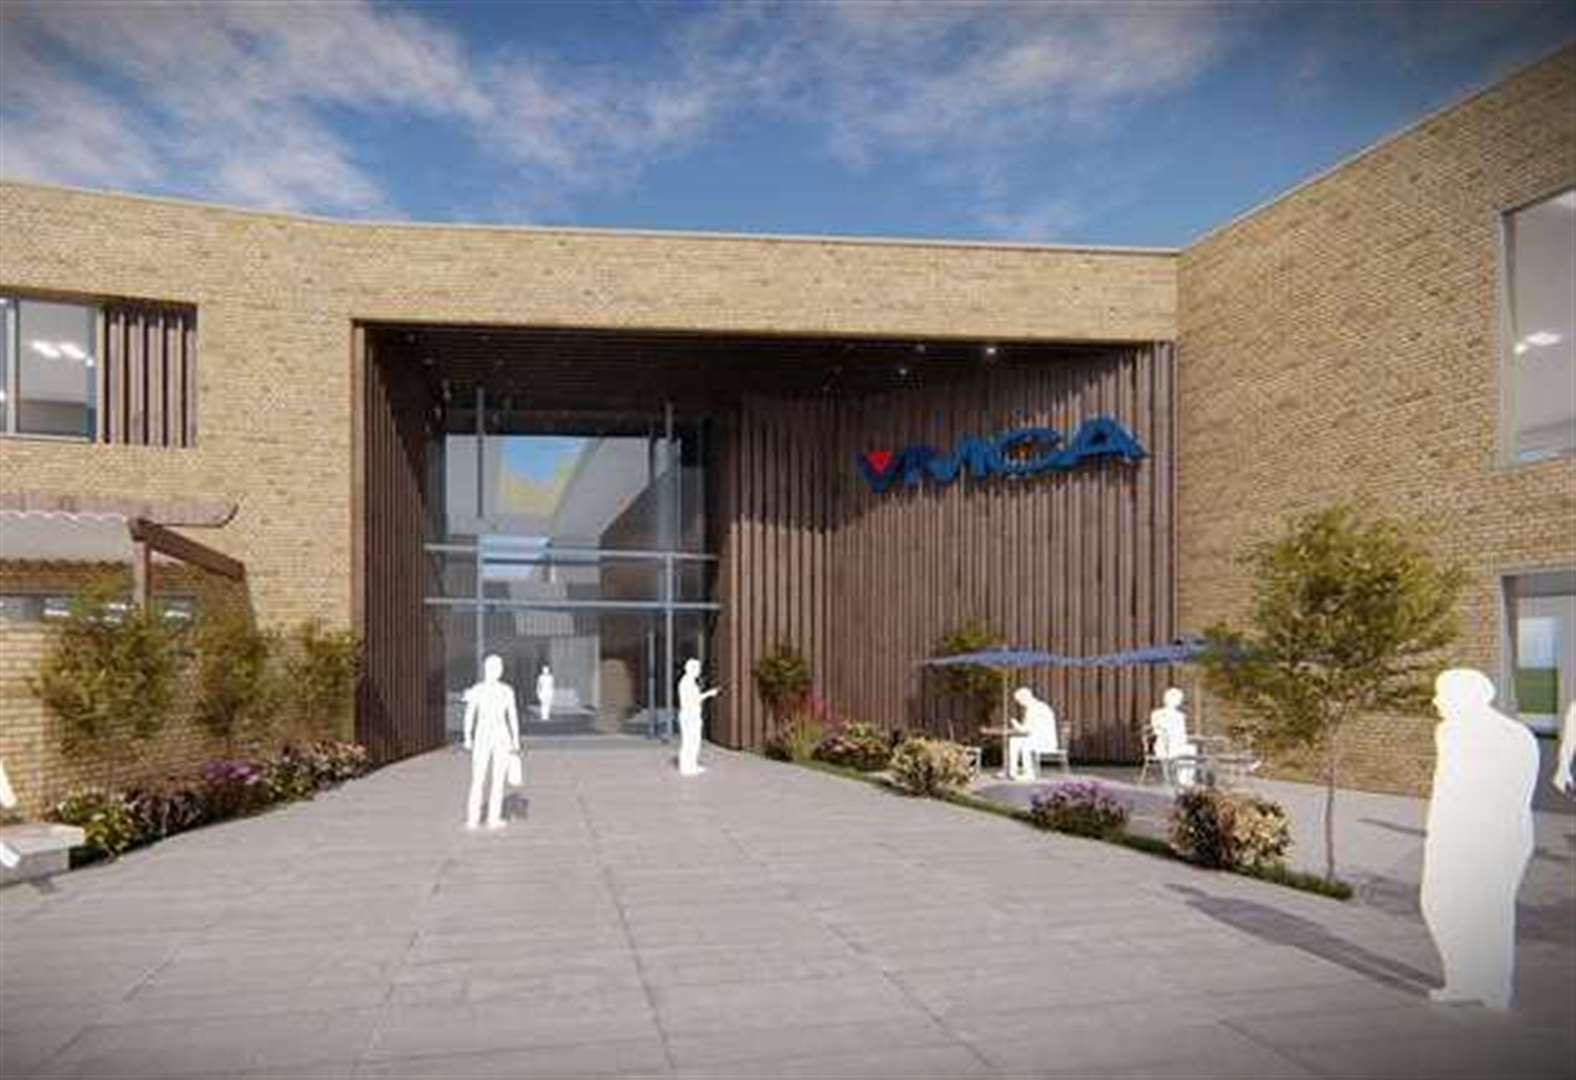 POLL: Should the district council give more funding to the flagship YMCA project?